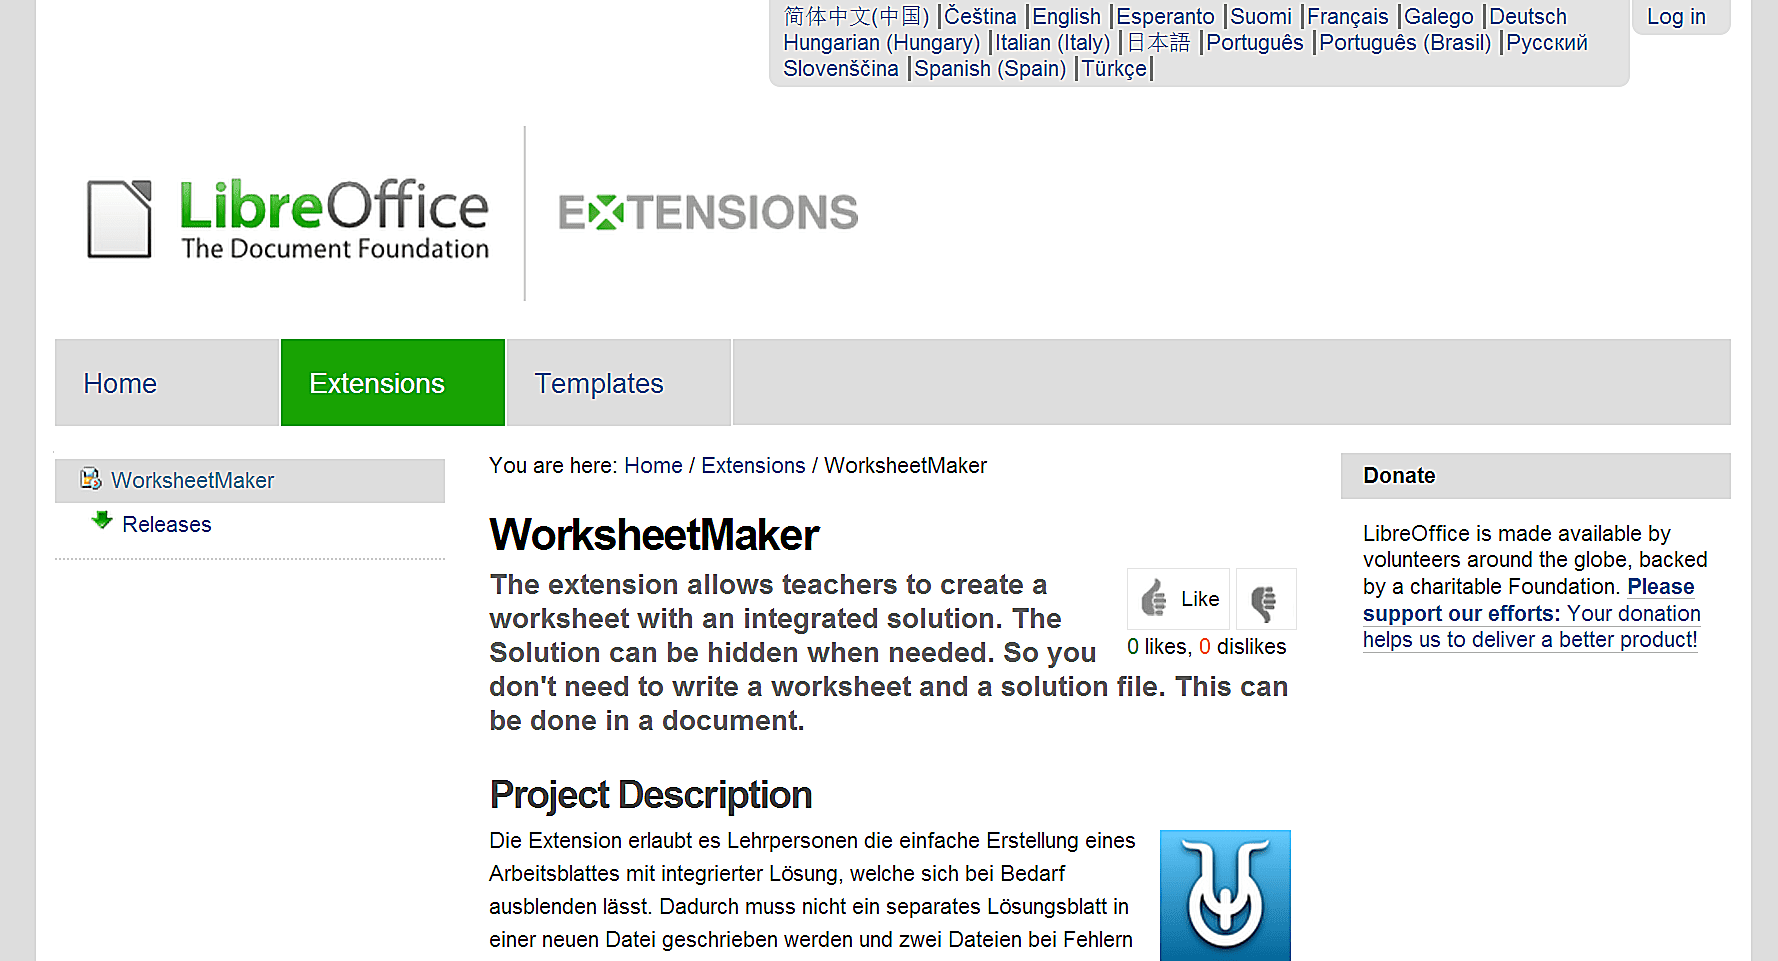 Expand LibreOffice with Free Extensions for School